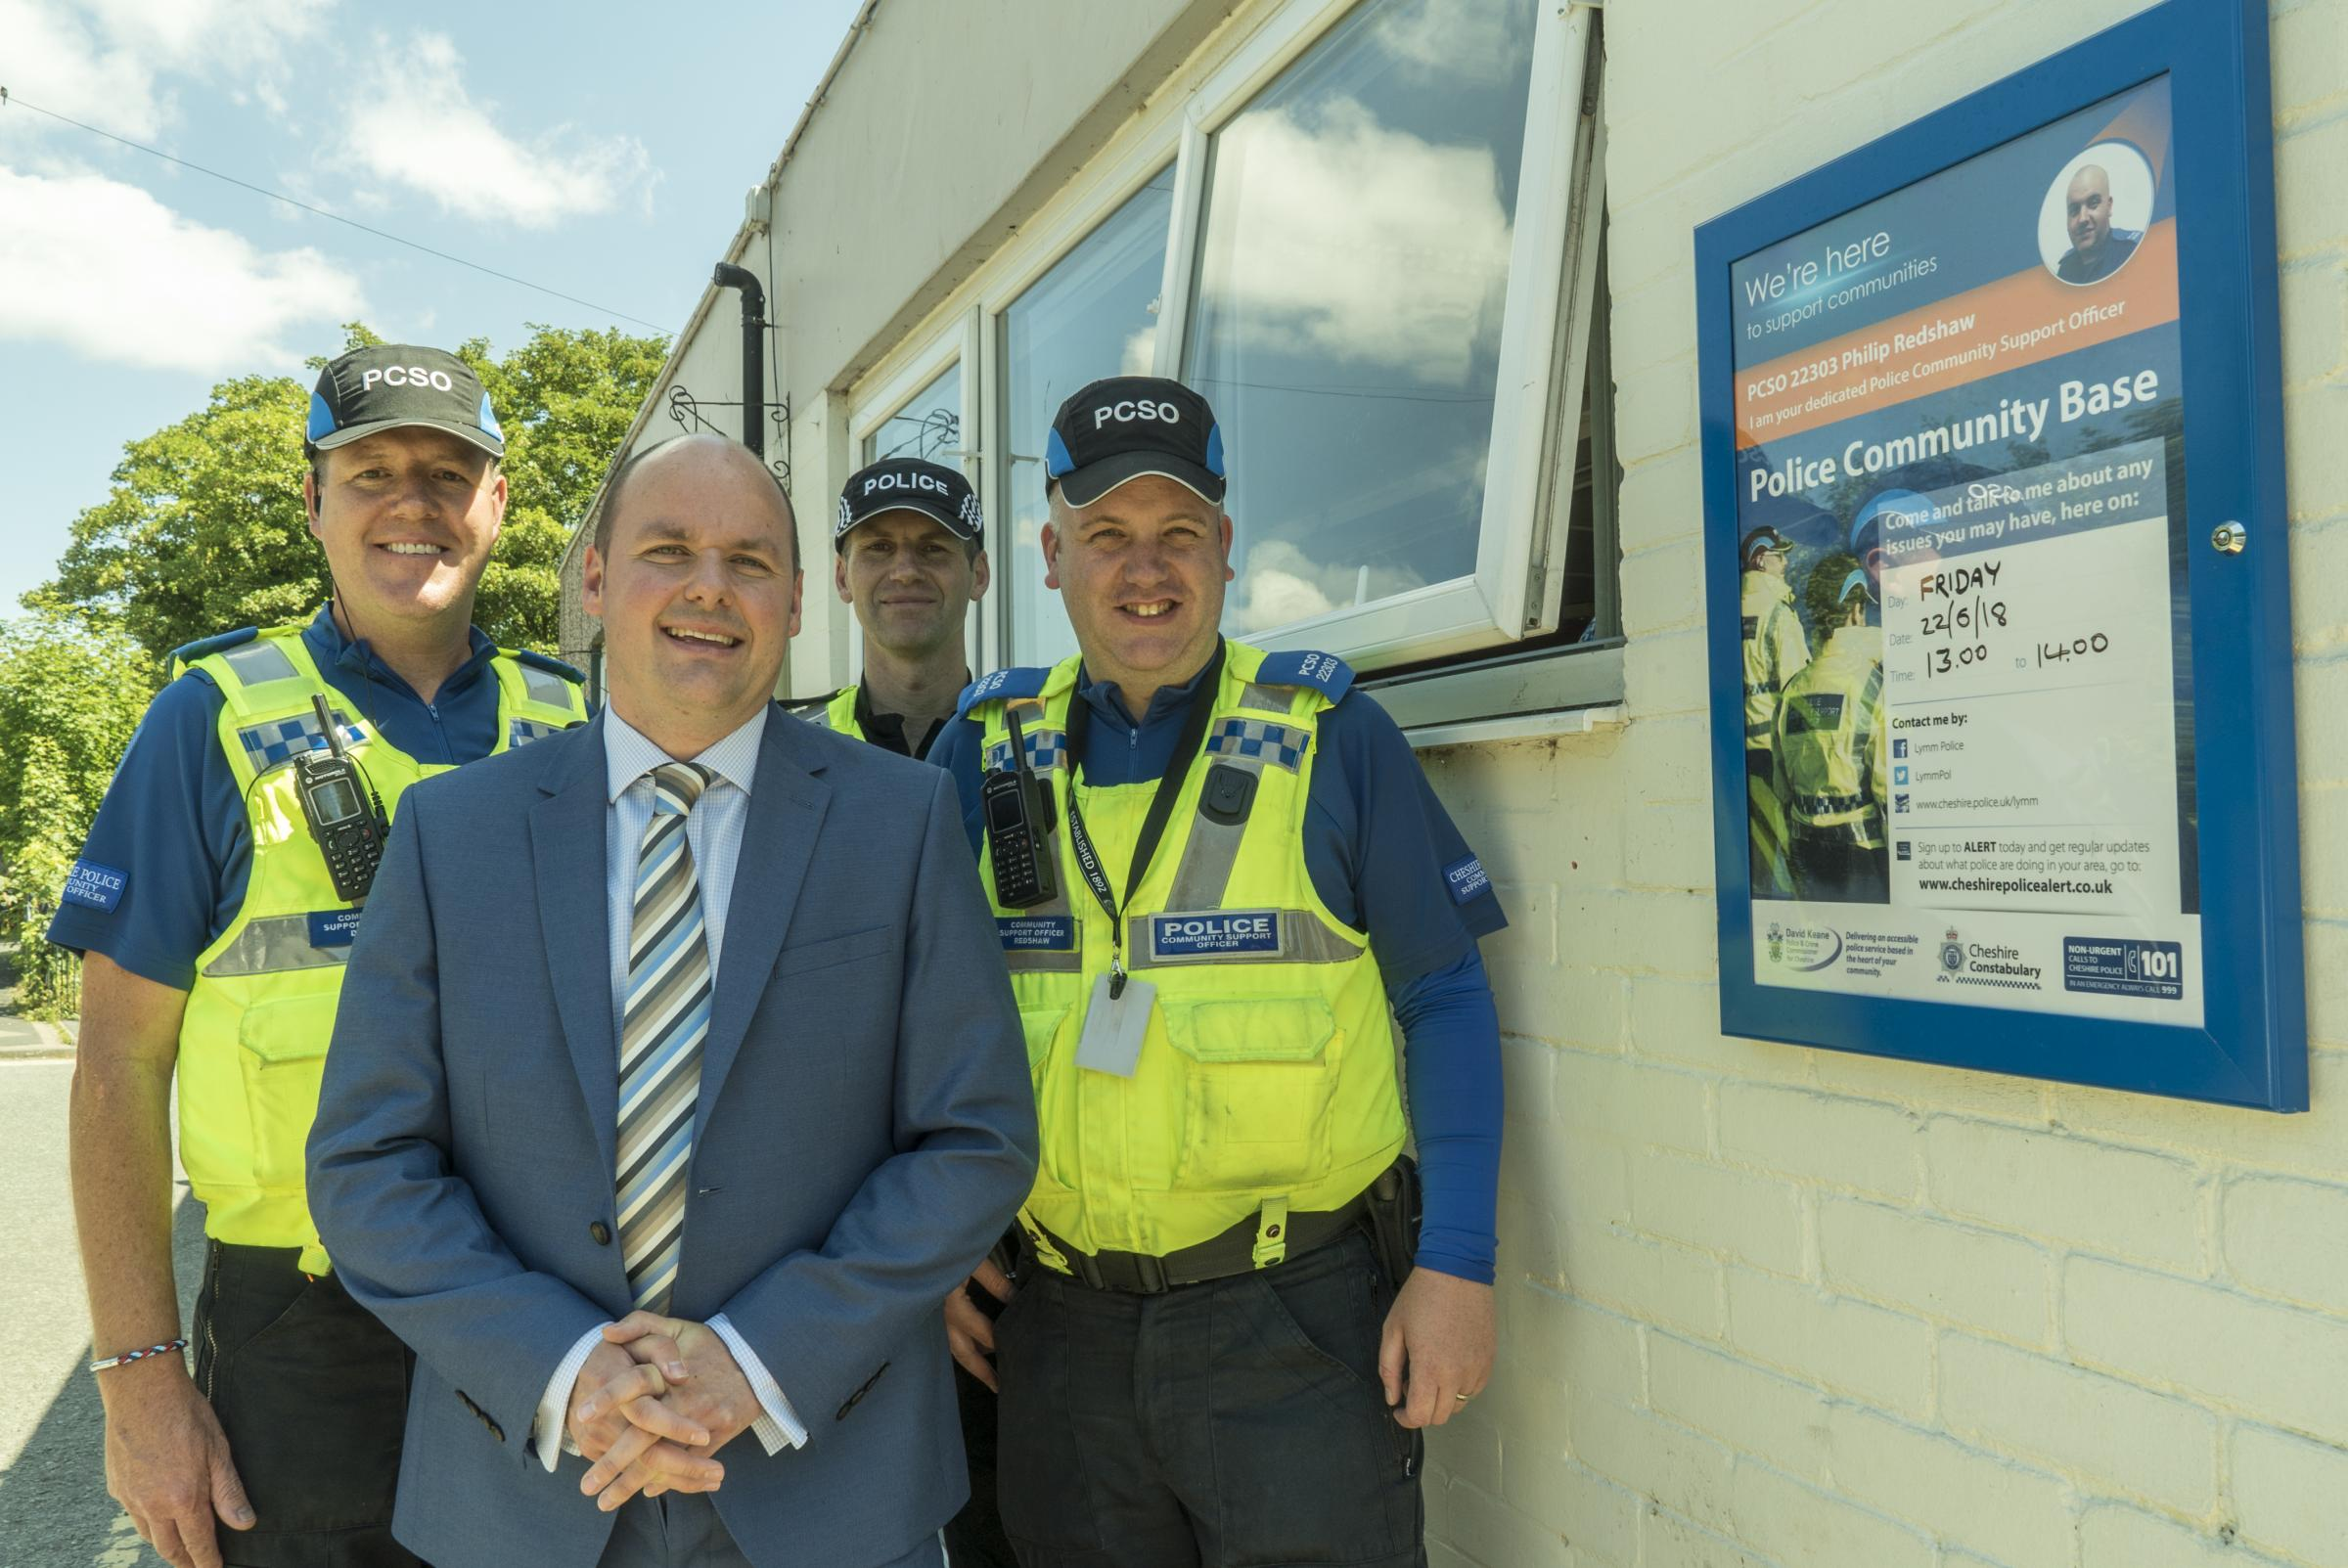 PCSO Daren Dennis, PCC David Keane, Sgt Gareth Kerr and PCSO Philip Redshaw at a community base launch in 2018